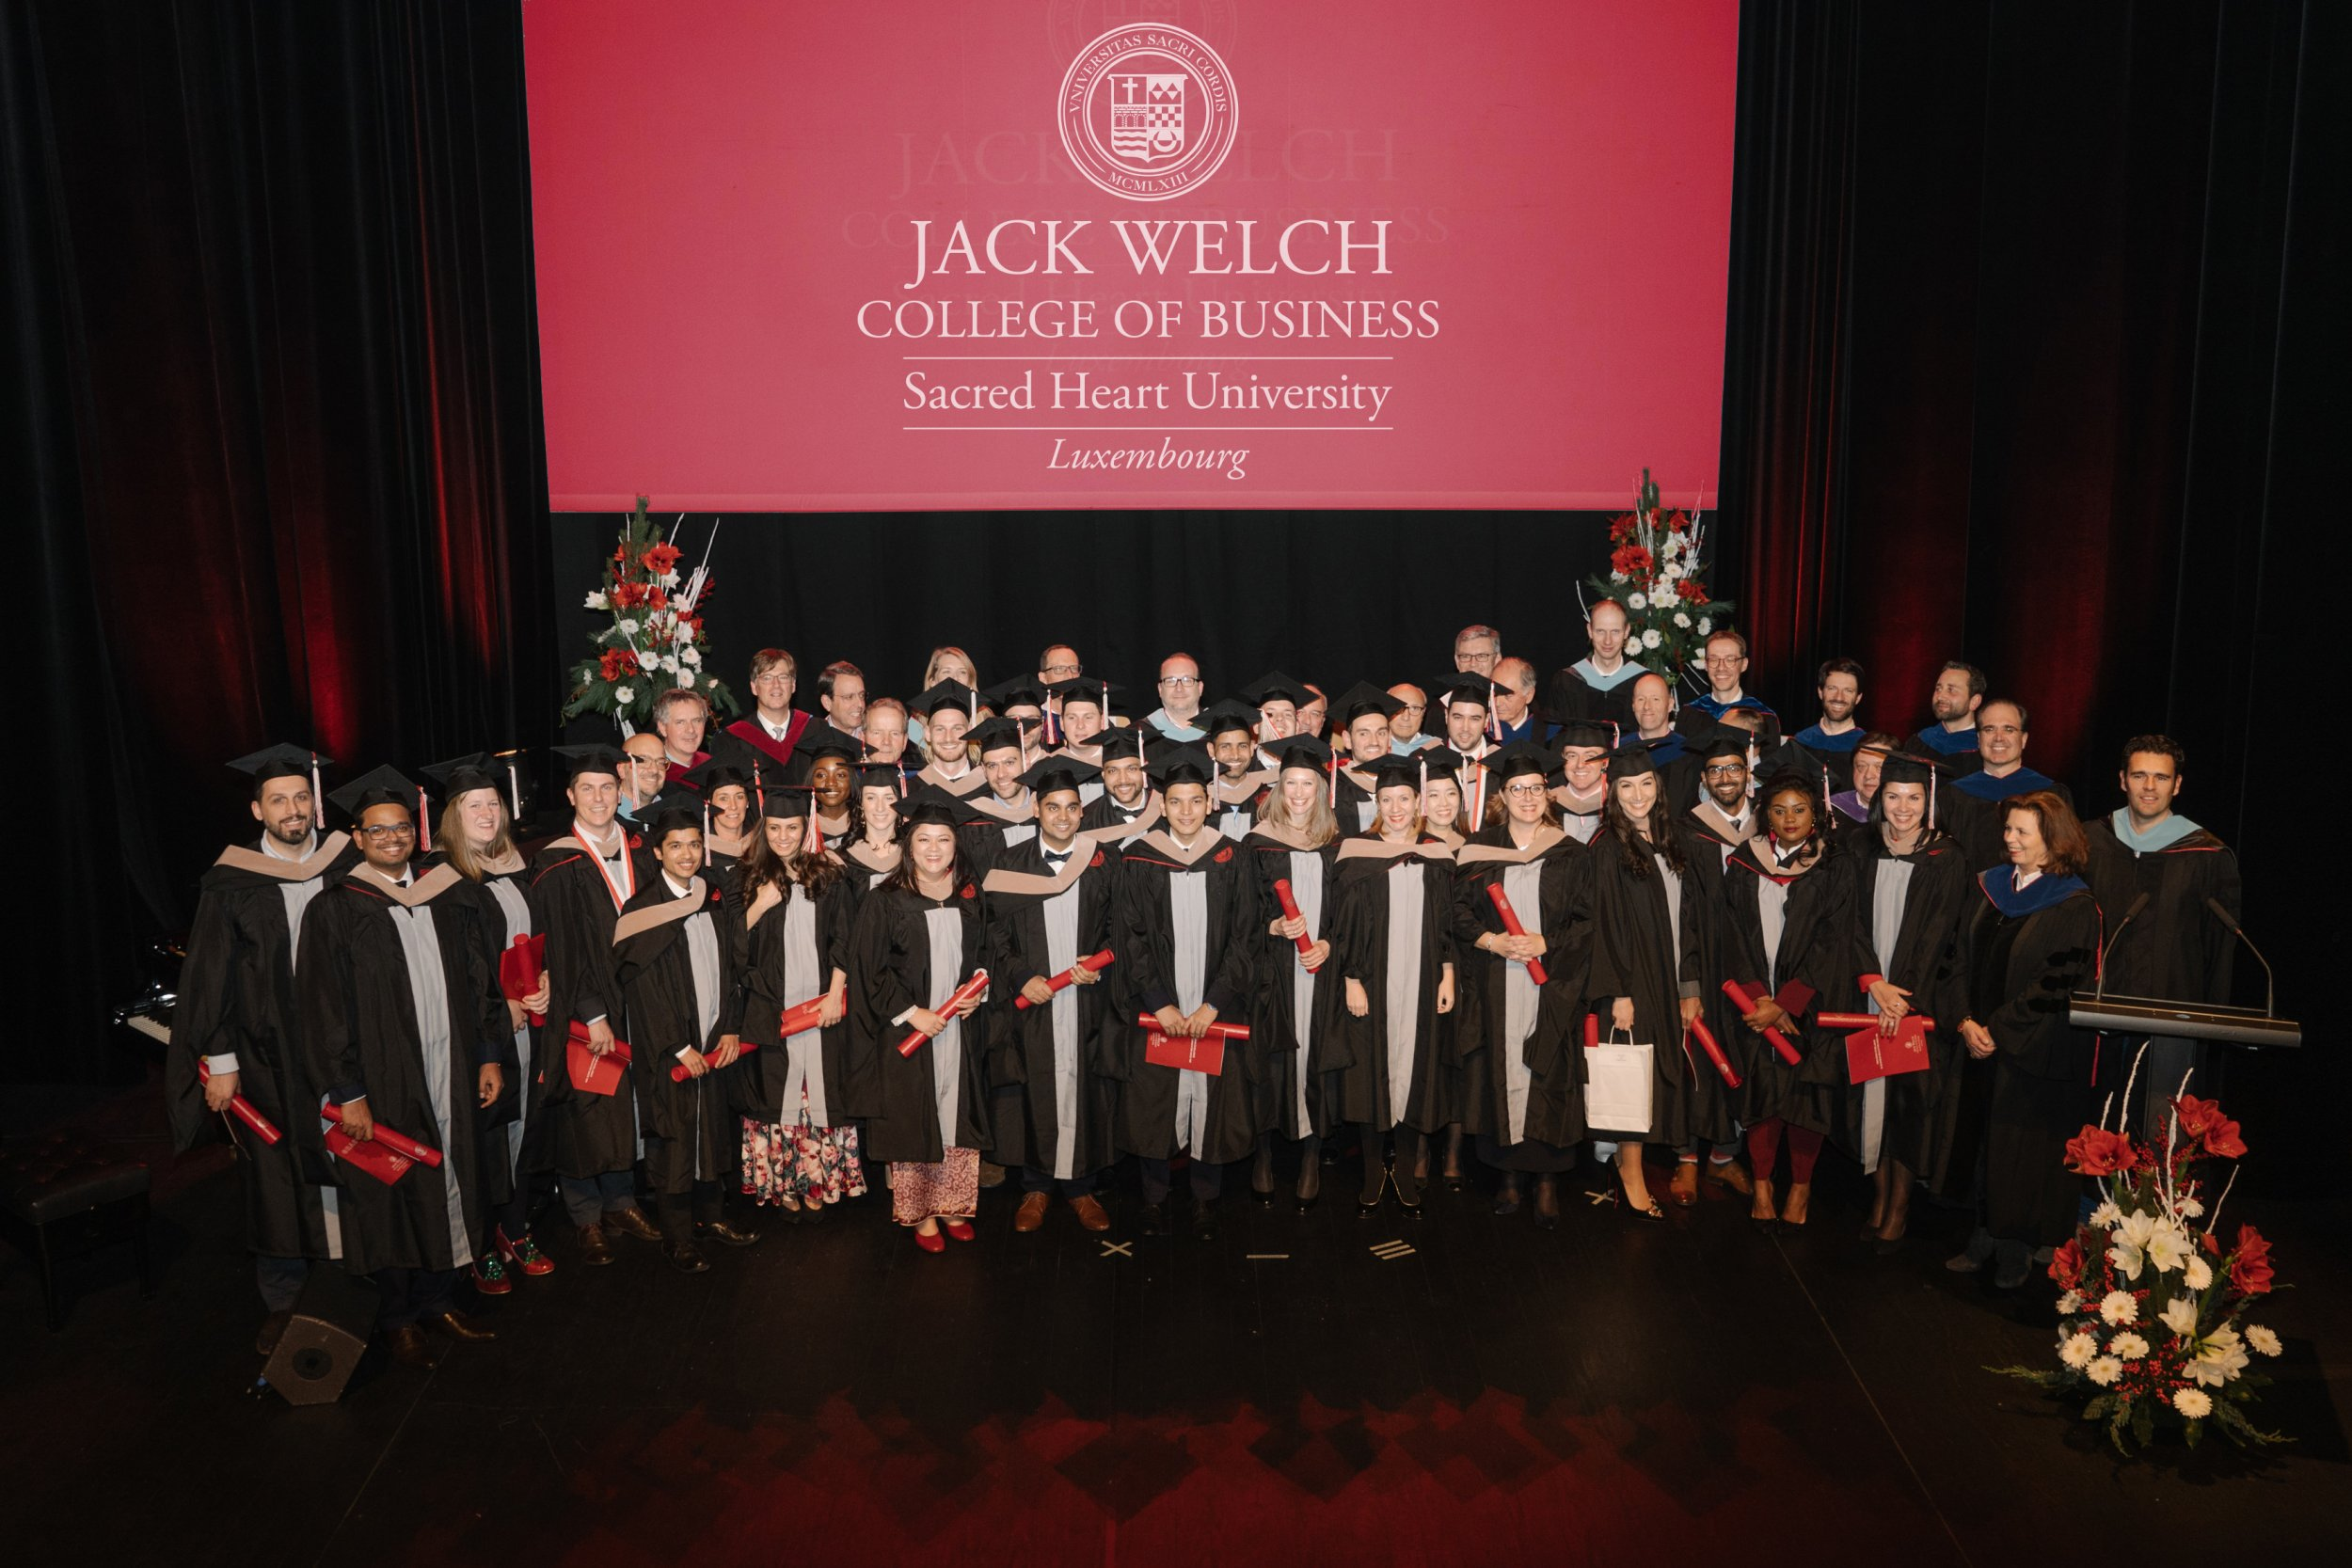 Jack Welch College of Business, Sacred Heart University Luxembourg